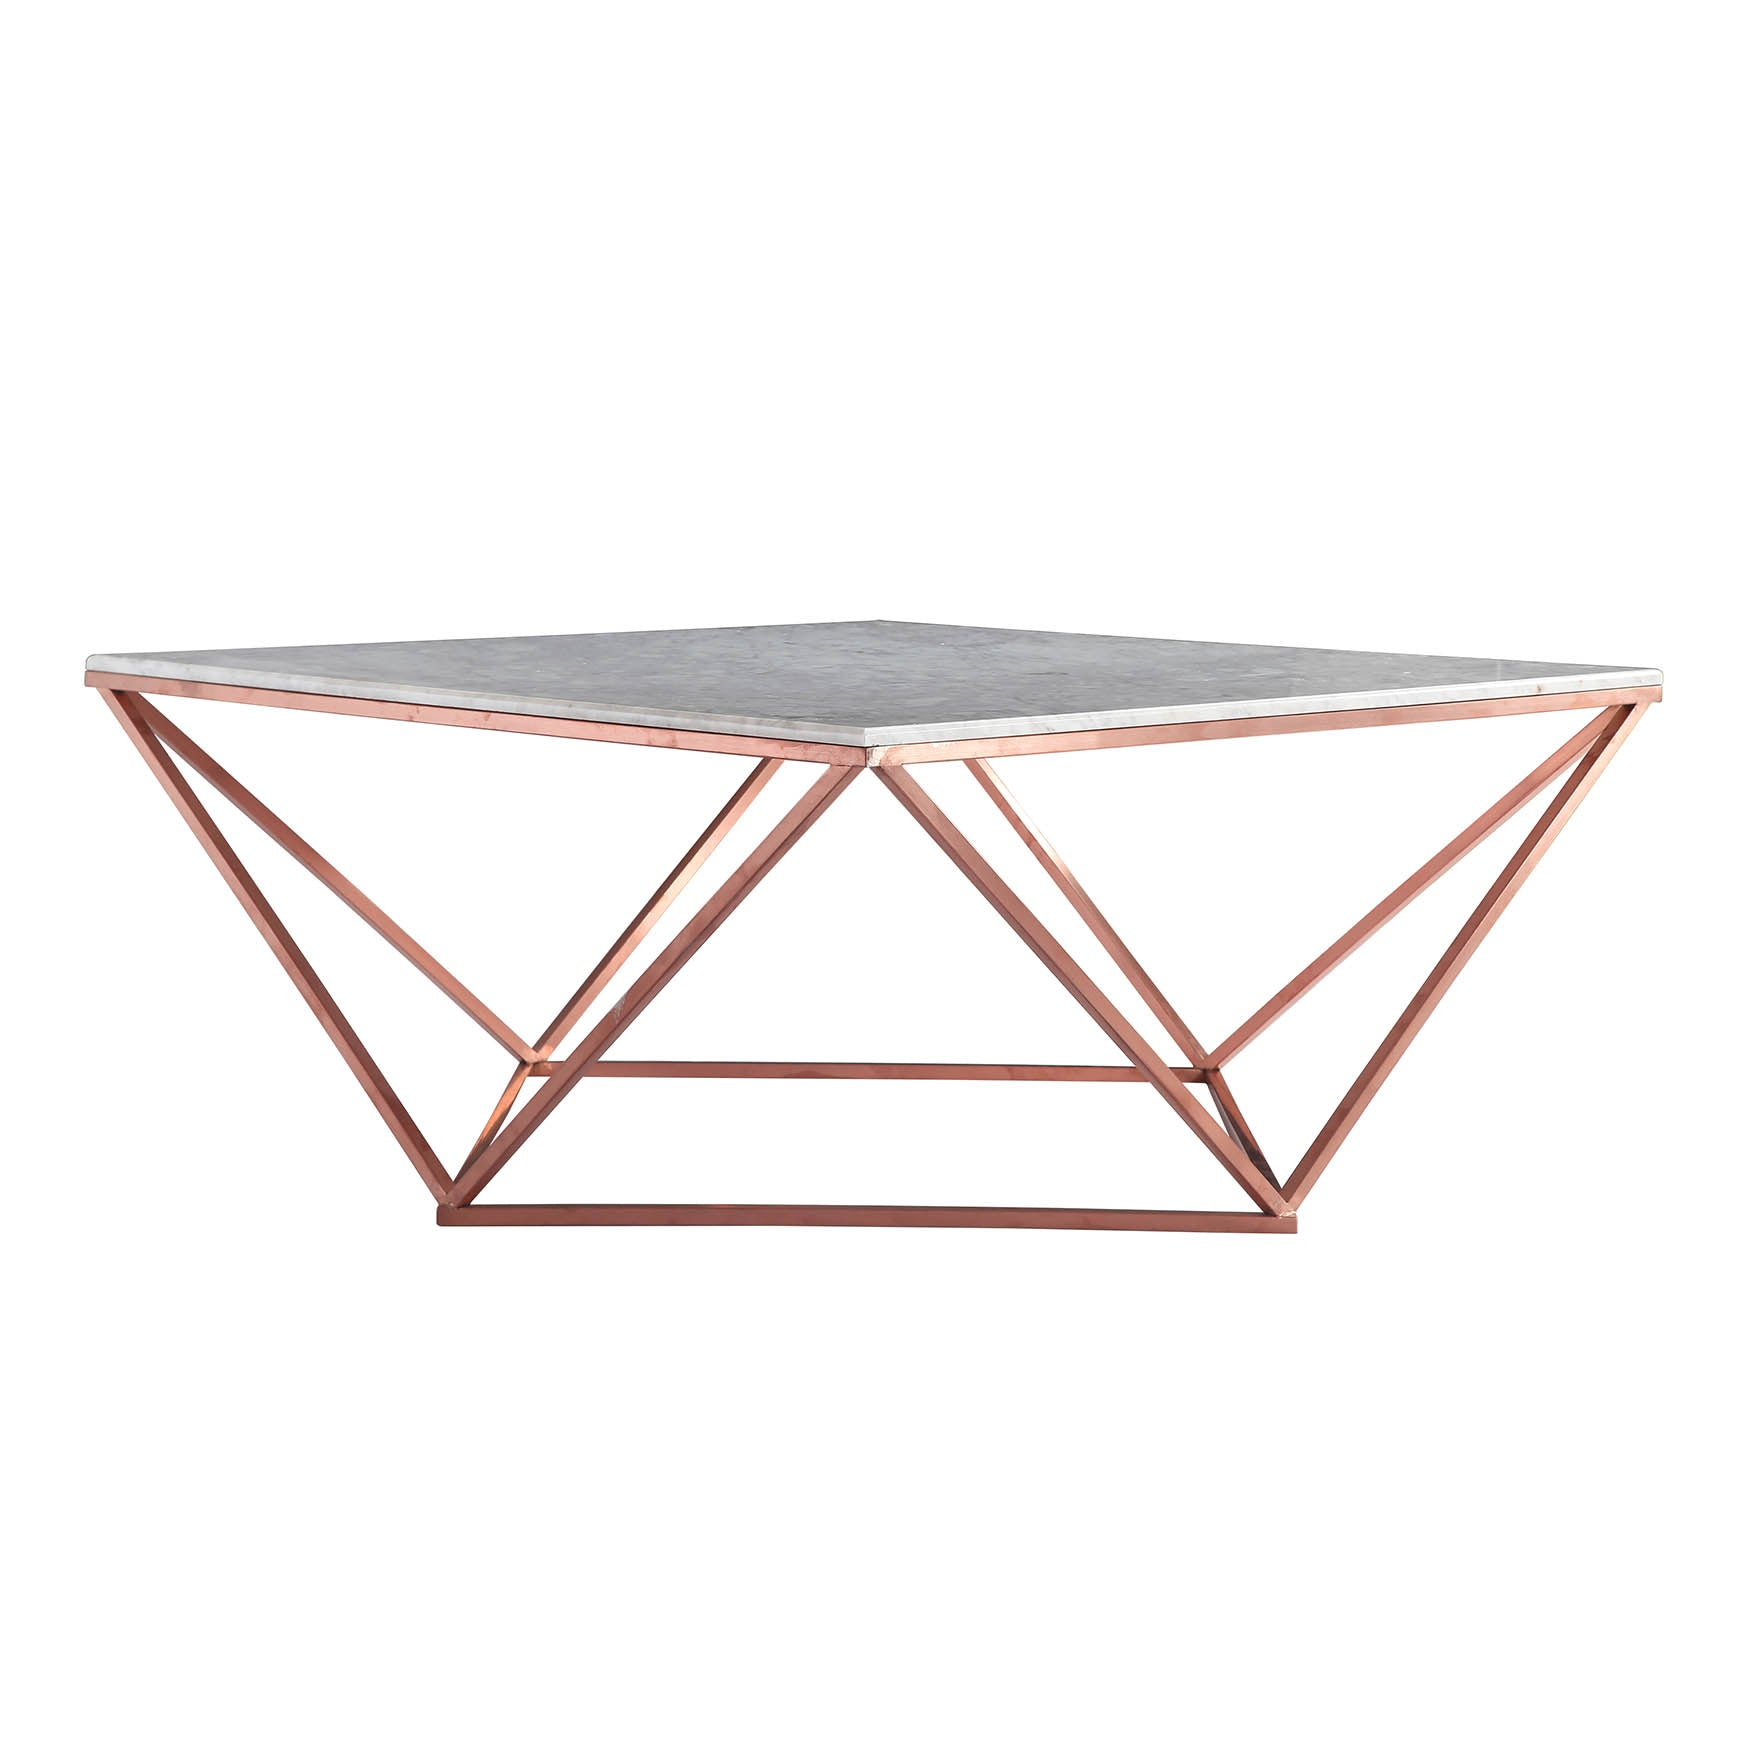 Natural Marble & Stainless Steel Table BP8809- B -  طاول من الرخام الطبيعي والفولاذ المقاوم للصدأ - Shop Online Furniture and Home Decor Store in Dubai, UAE at ebarza